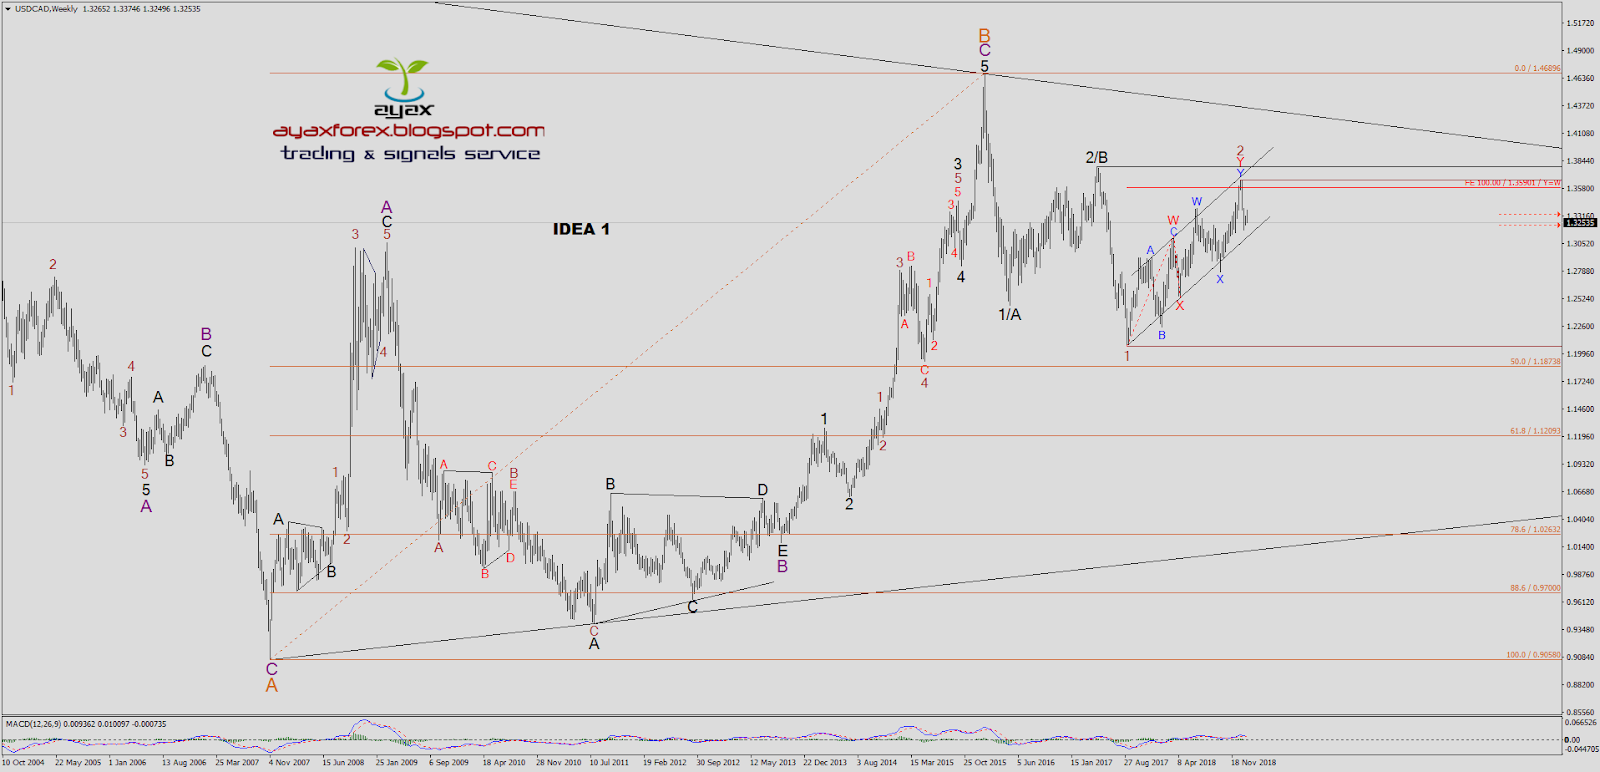 Ayax Forex Trading And Signals Service Usdcad Weekly Amp Daily Outlook Update Bearish